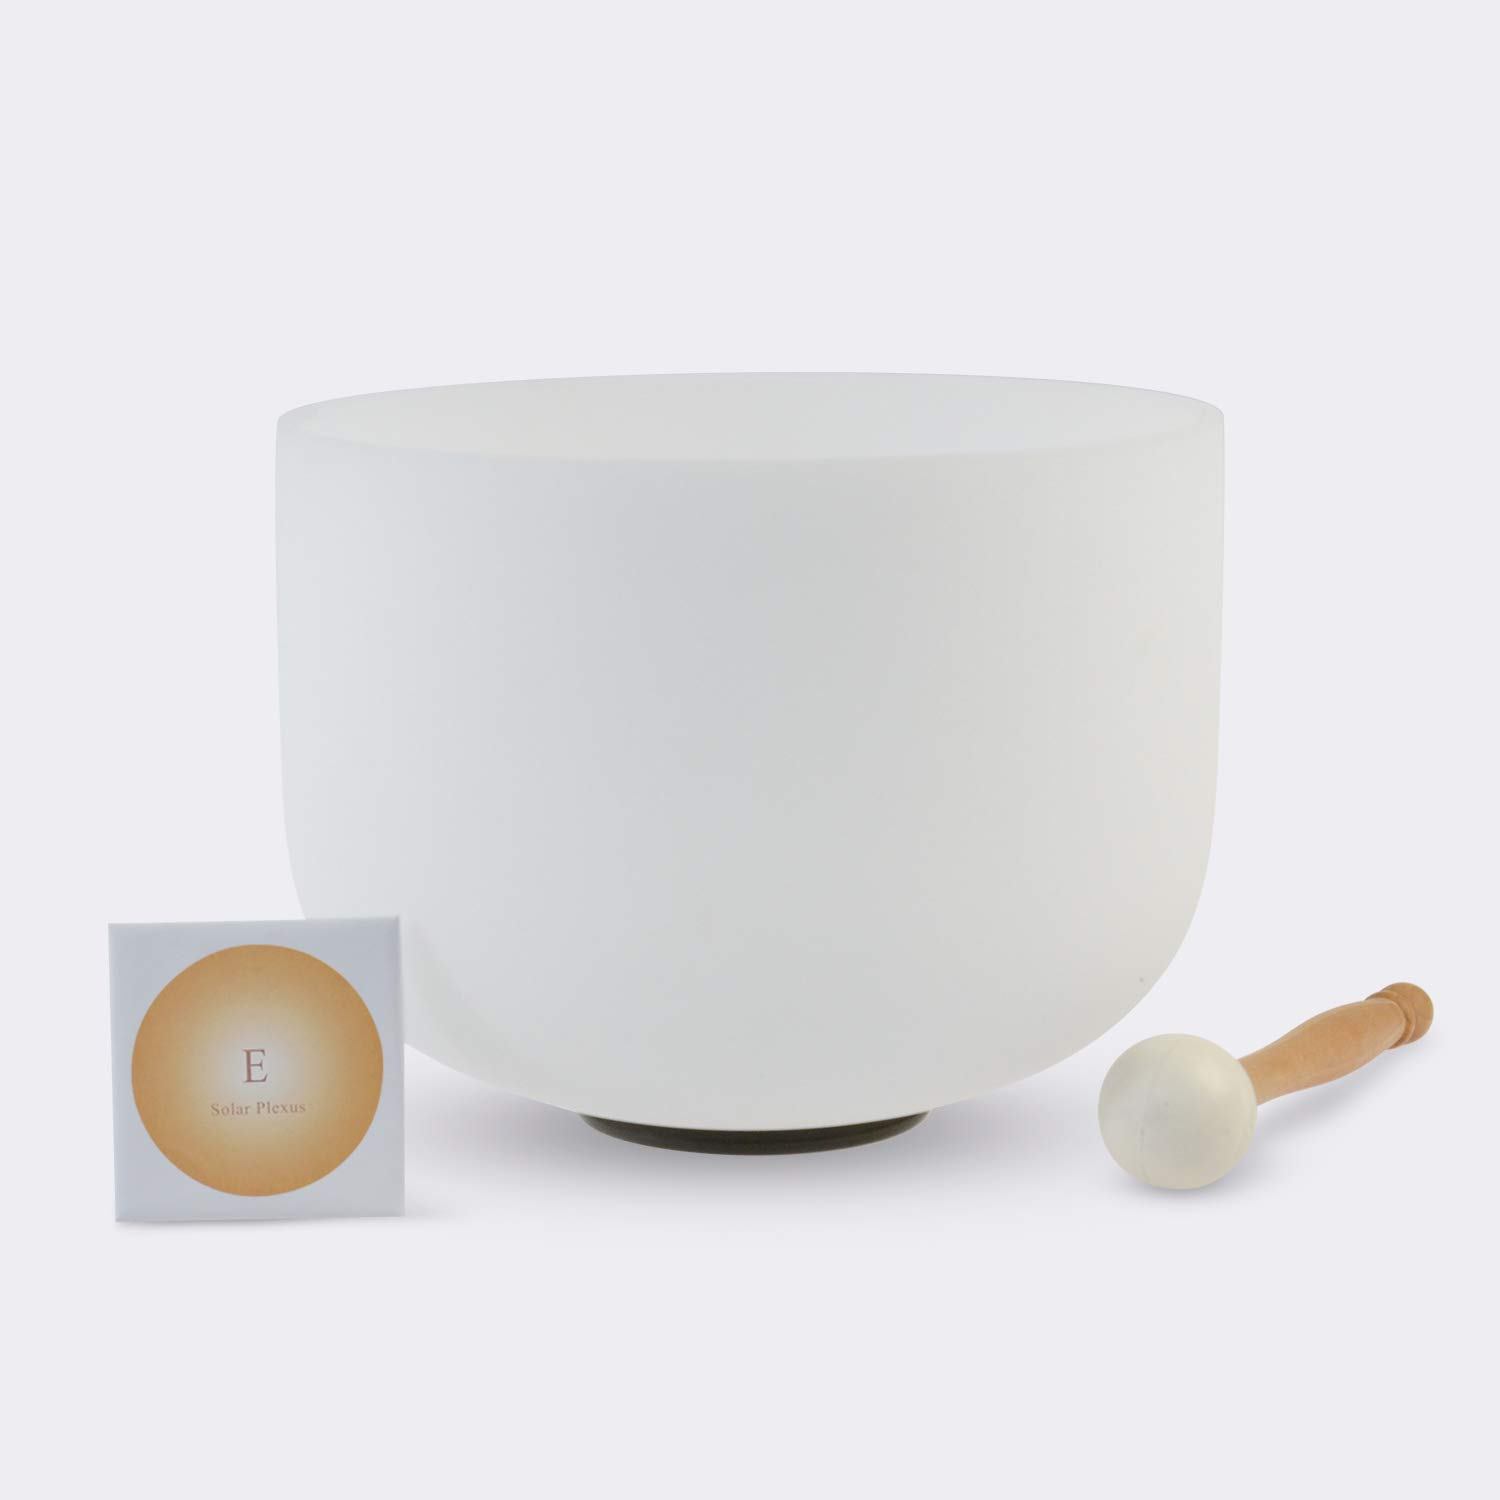 TOPFUND Singing Bowls 432Hz E Note Crystal Singing Bowl Solar Plexus Chakra 10 inch (O ring and Rubber Mallet Included)